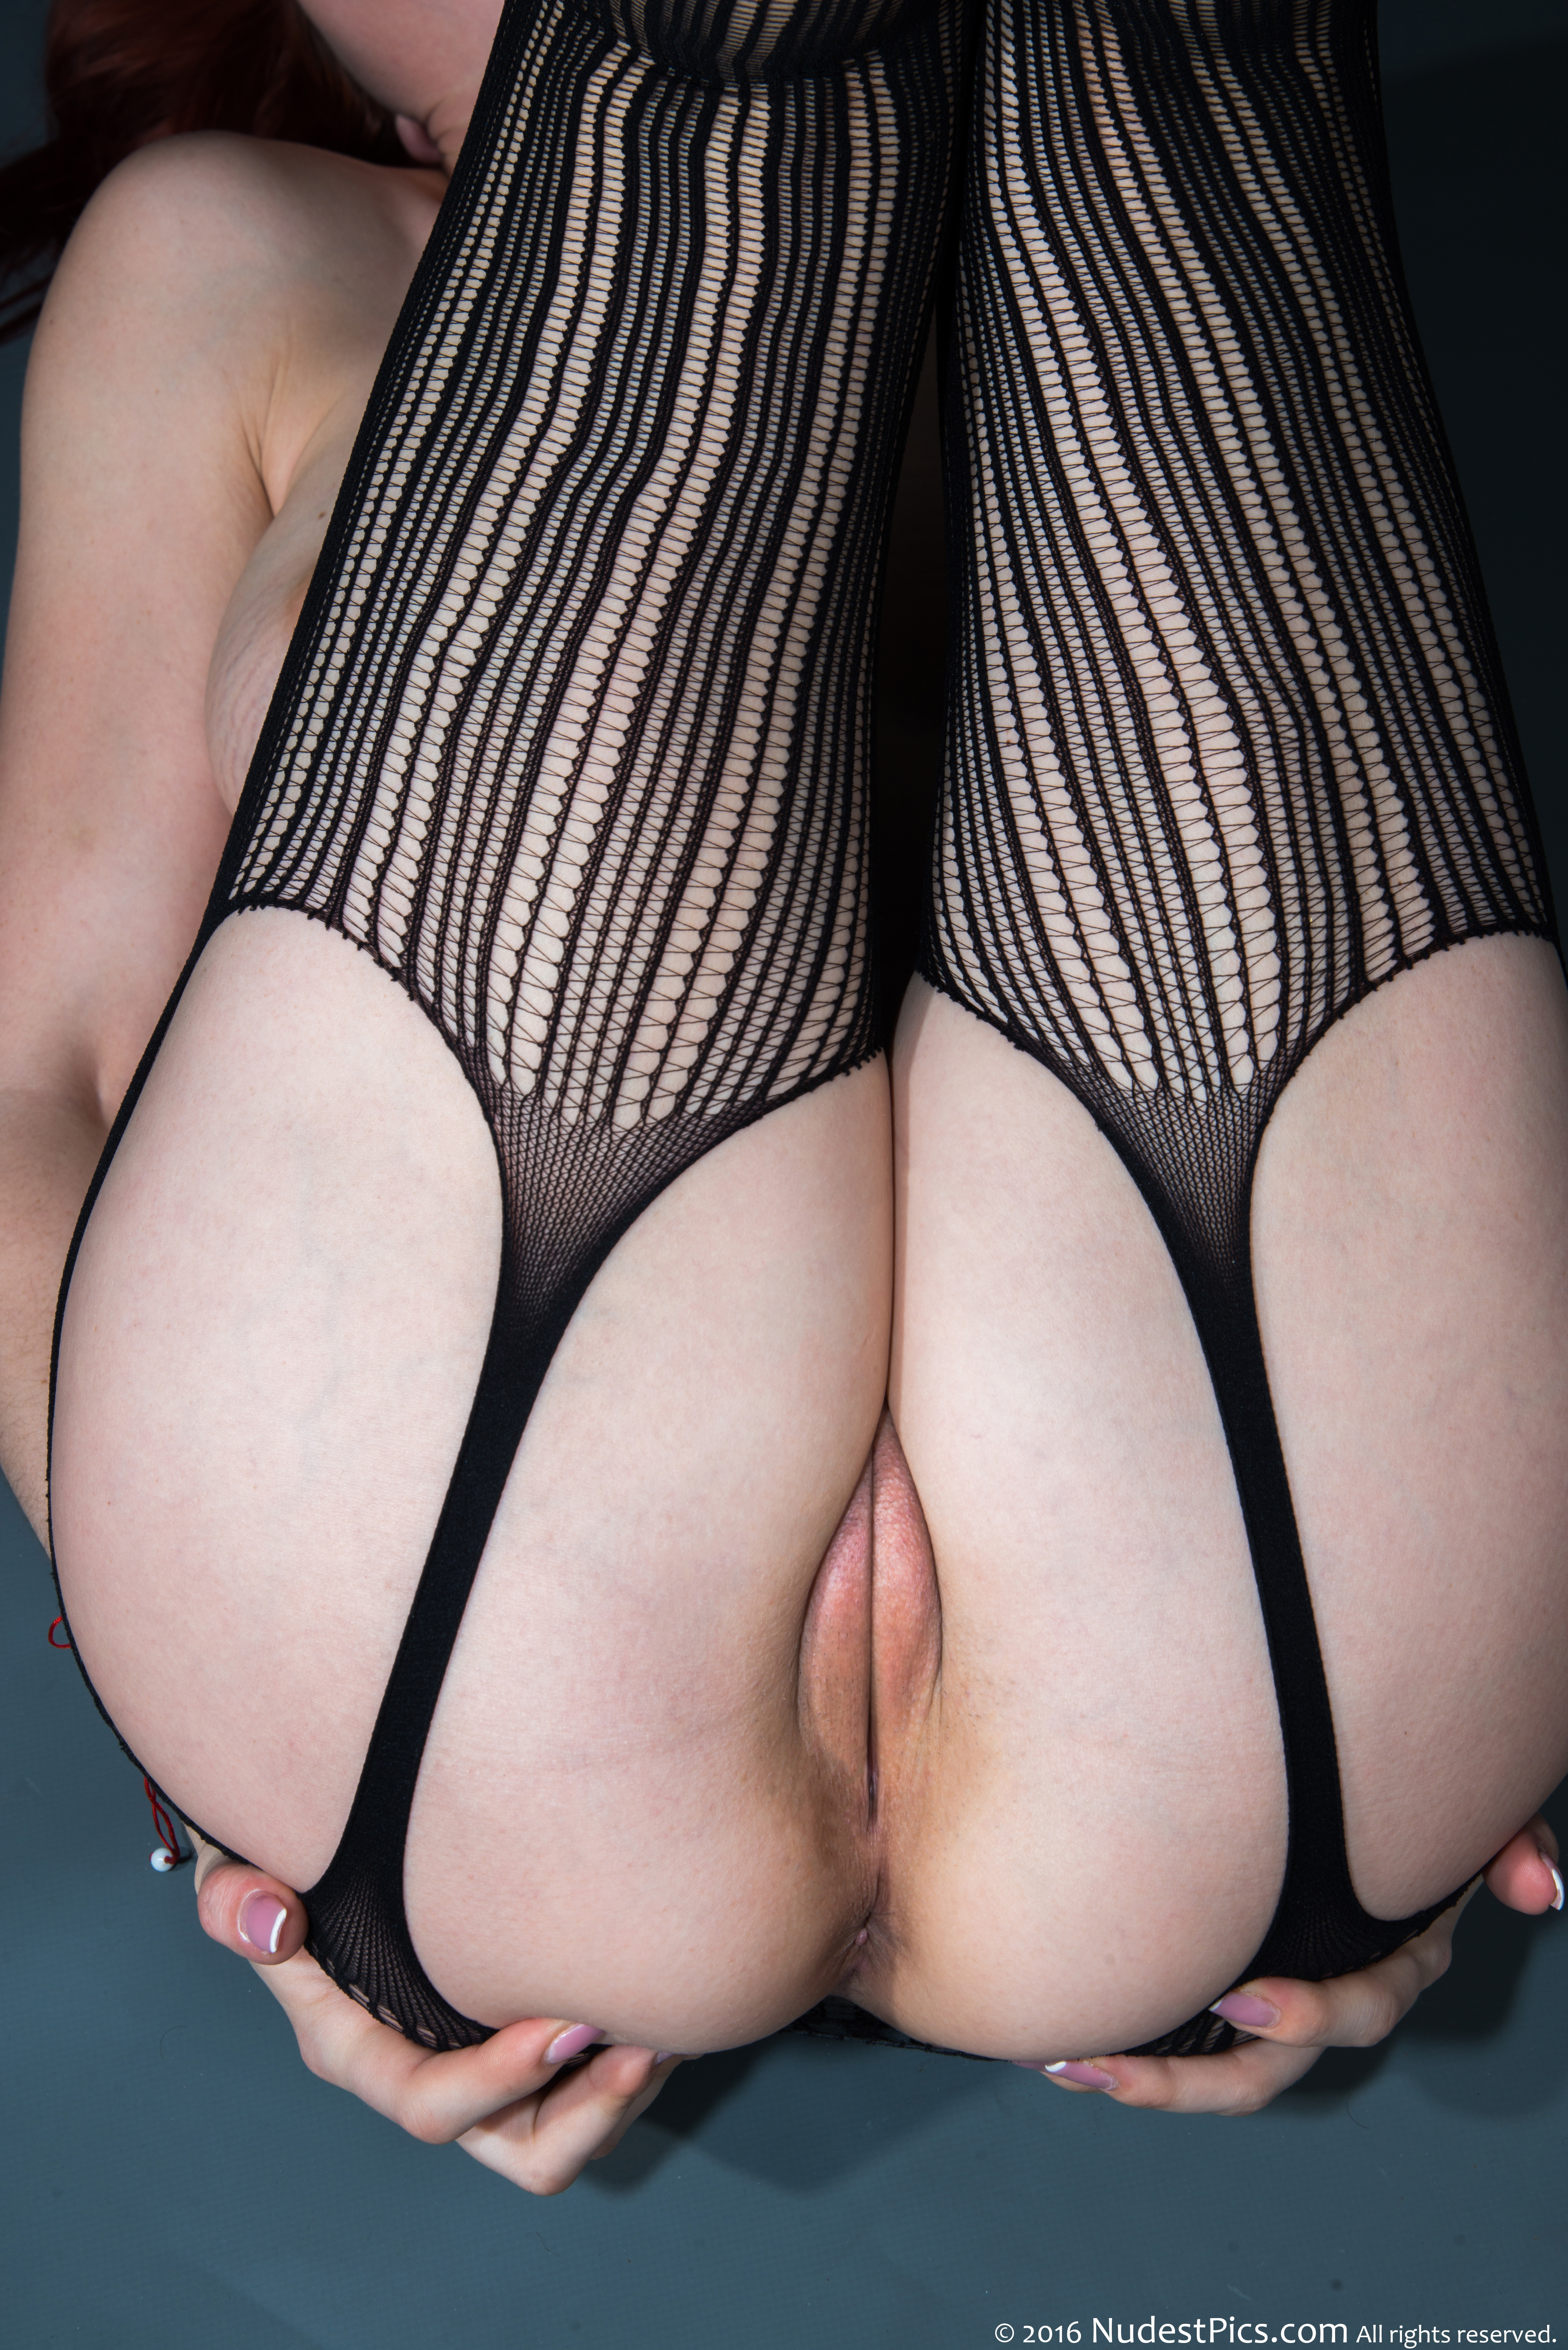 Legs Up Shaved Pussy Provocative Stockings HD